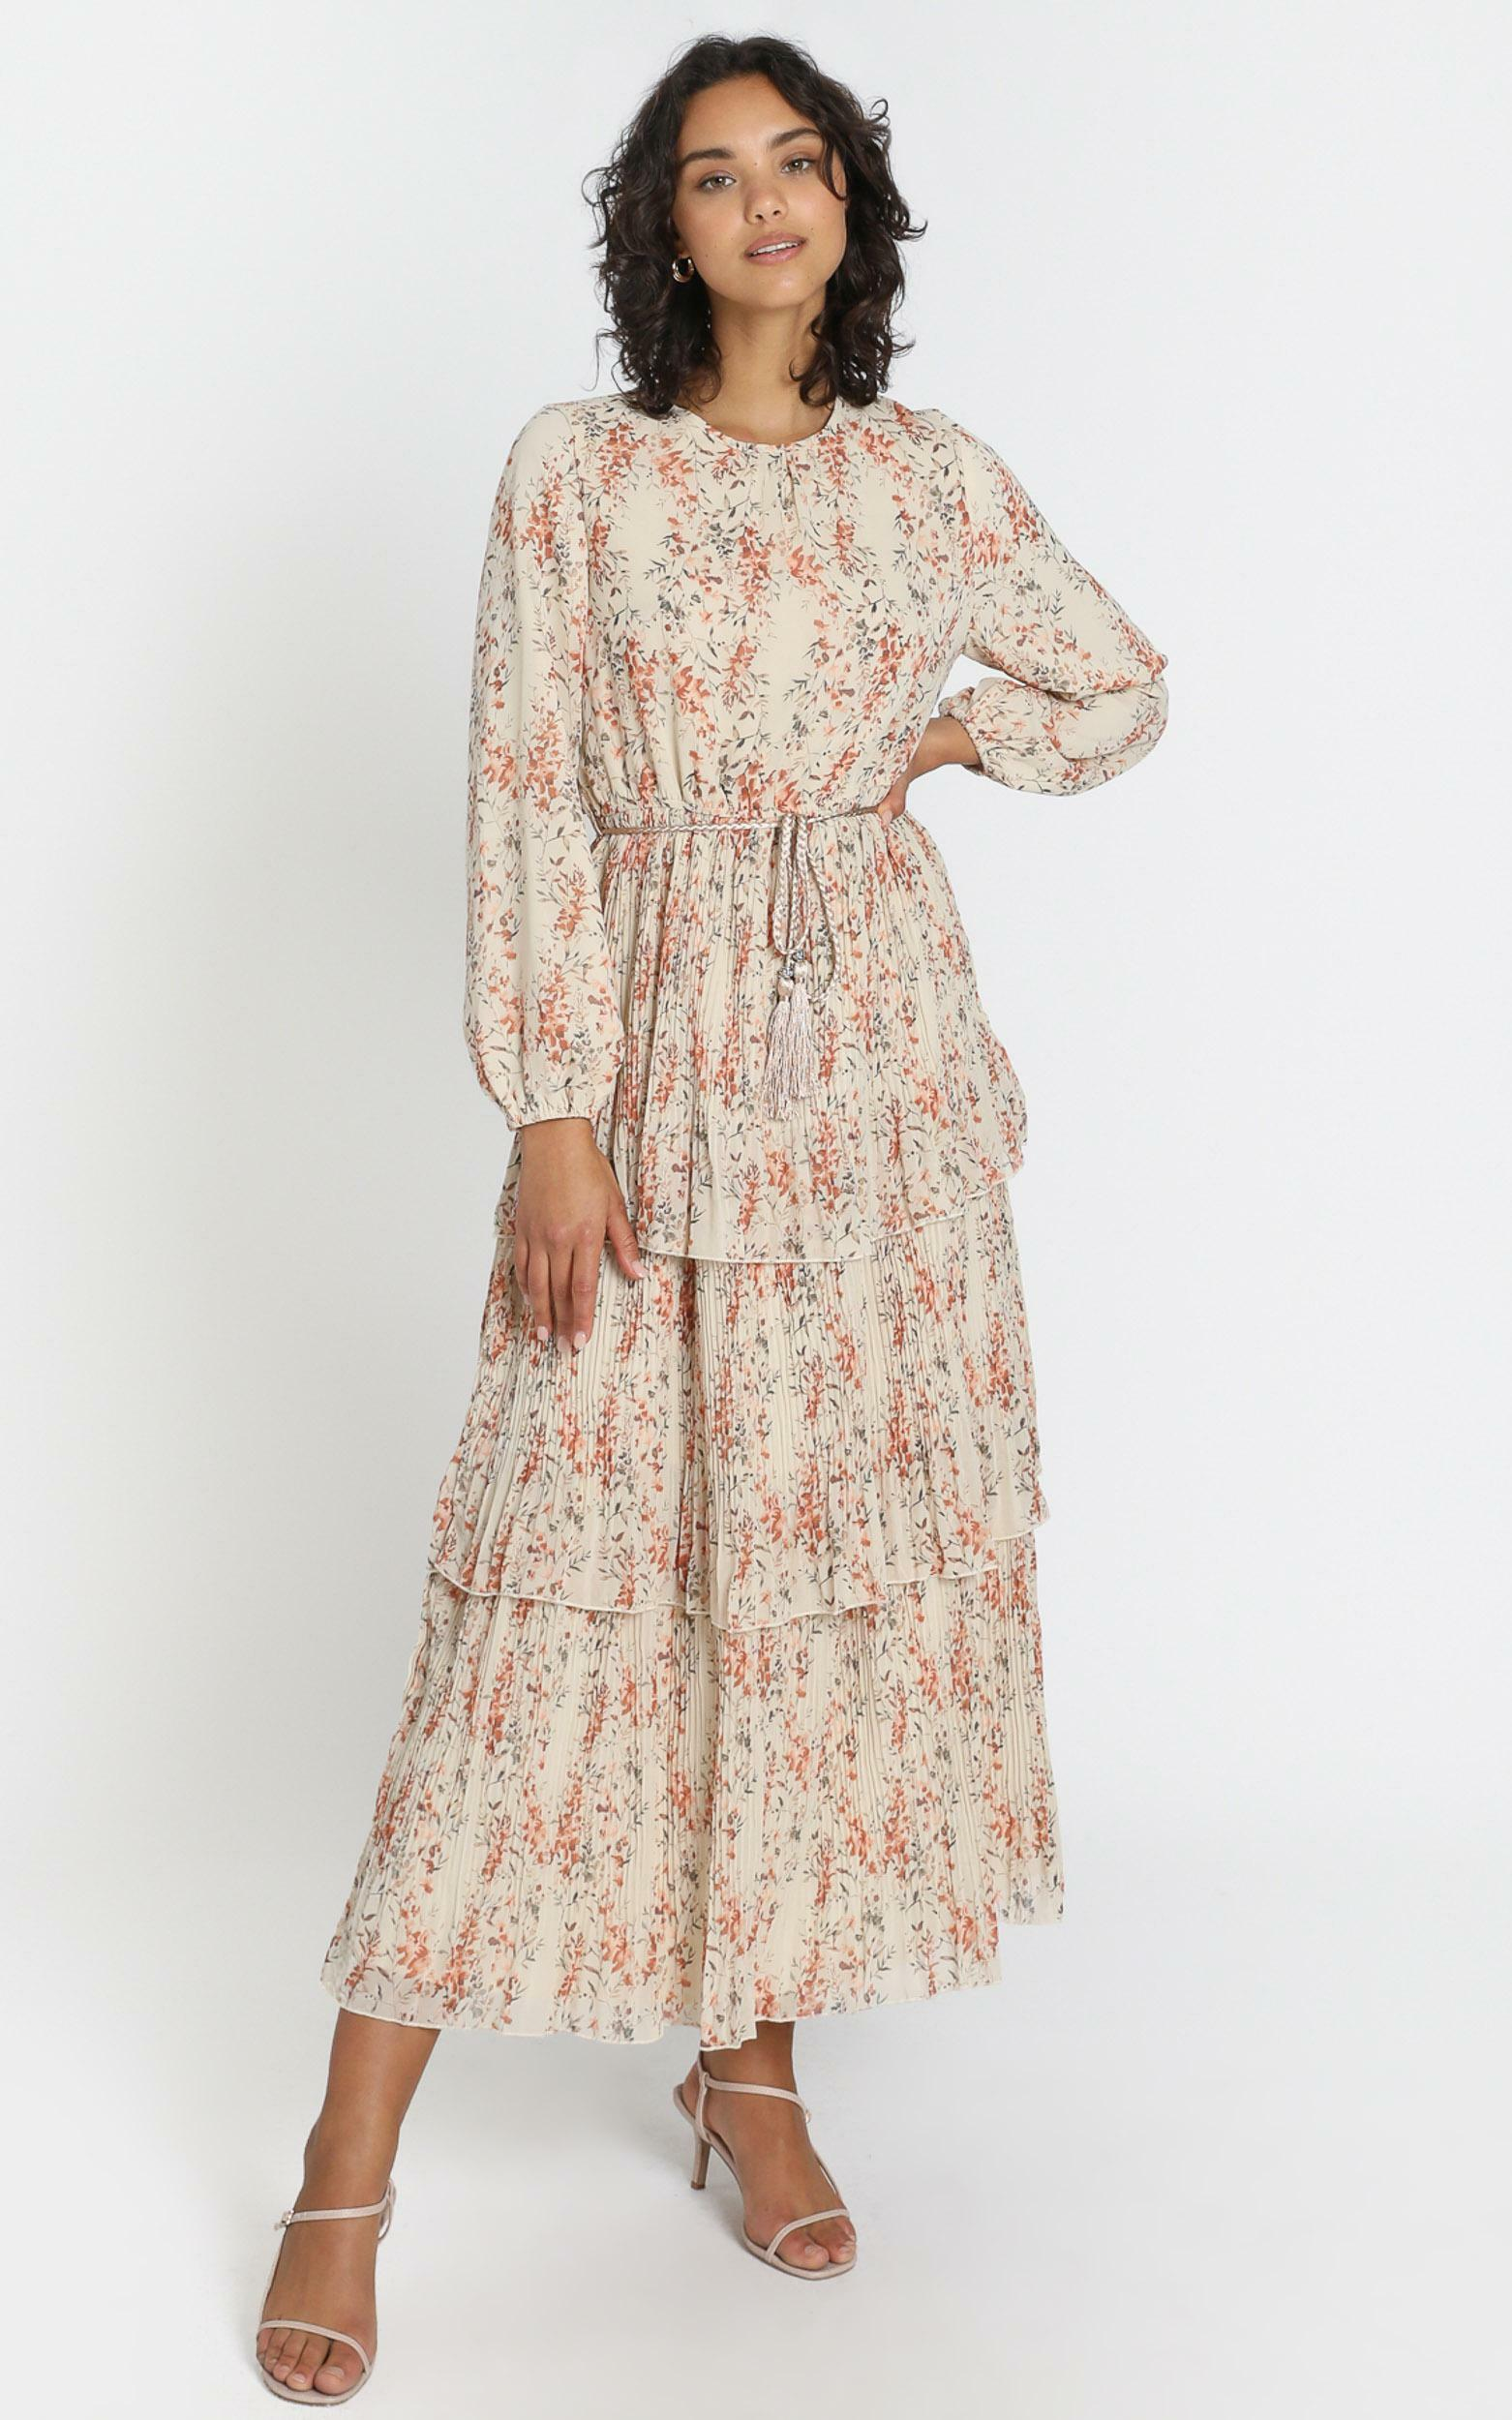 Arianna Dress in Beige Floral - 6 (XS), Beige, hi-res image number null